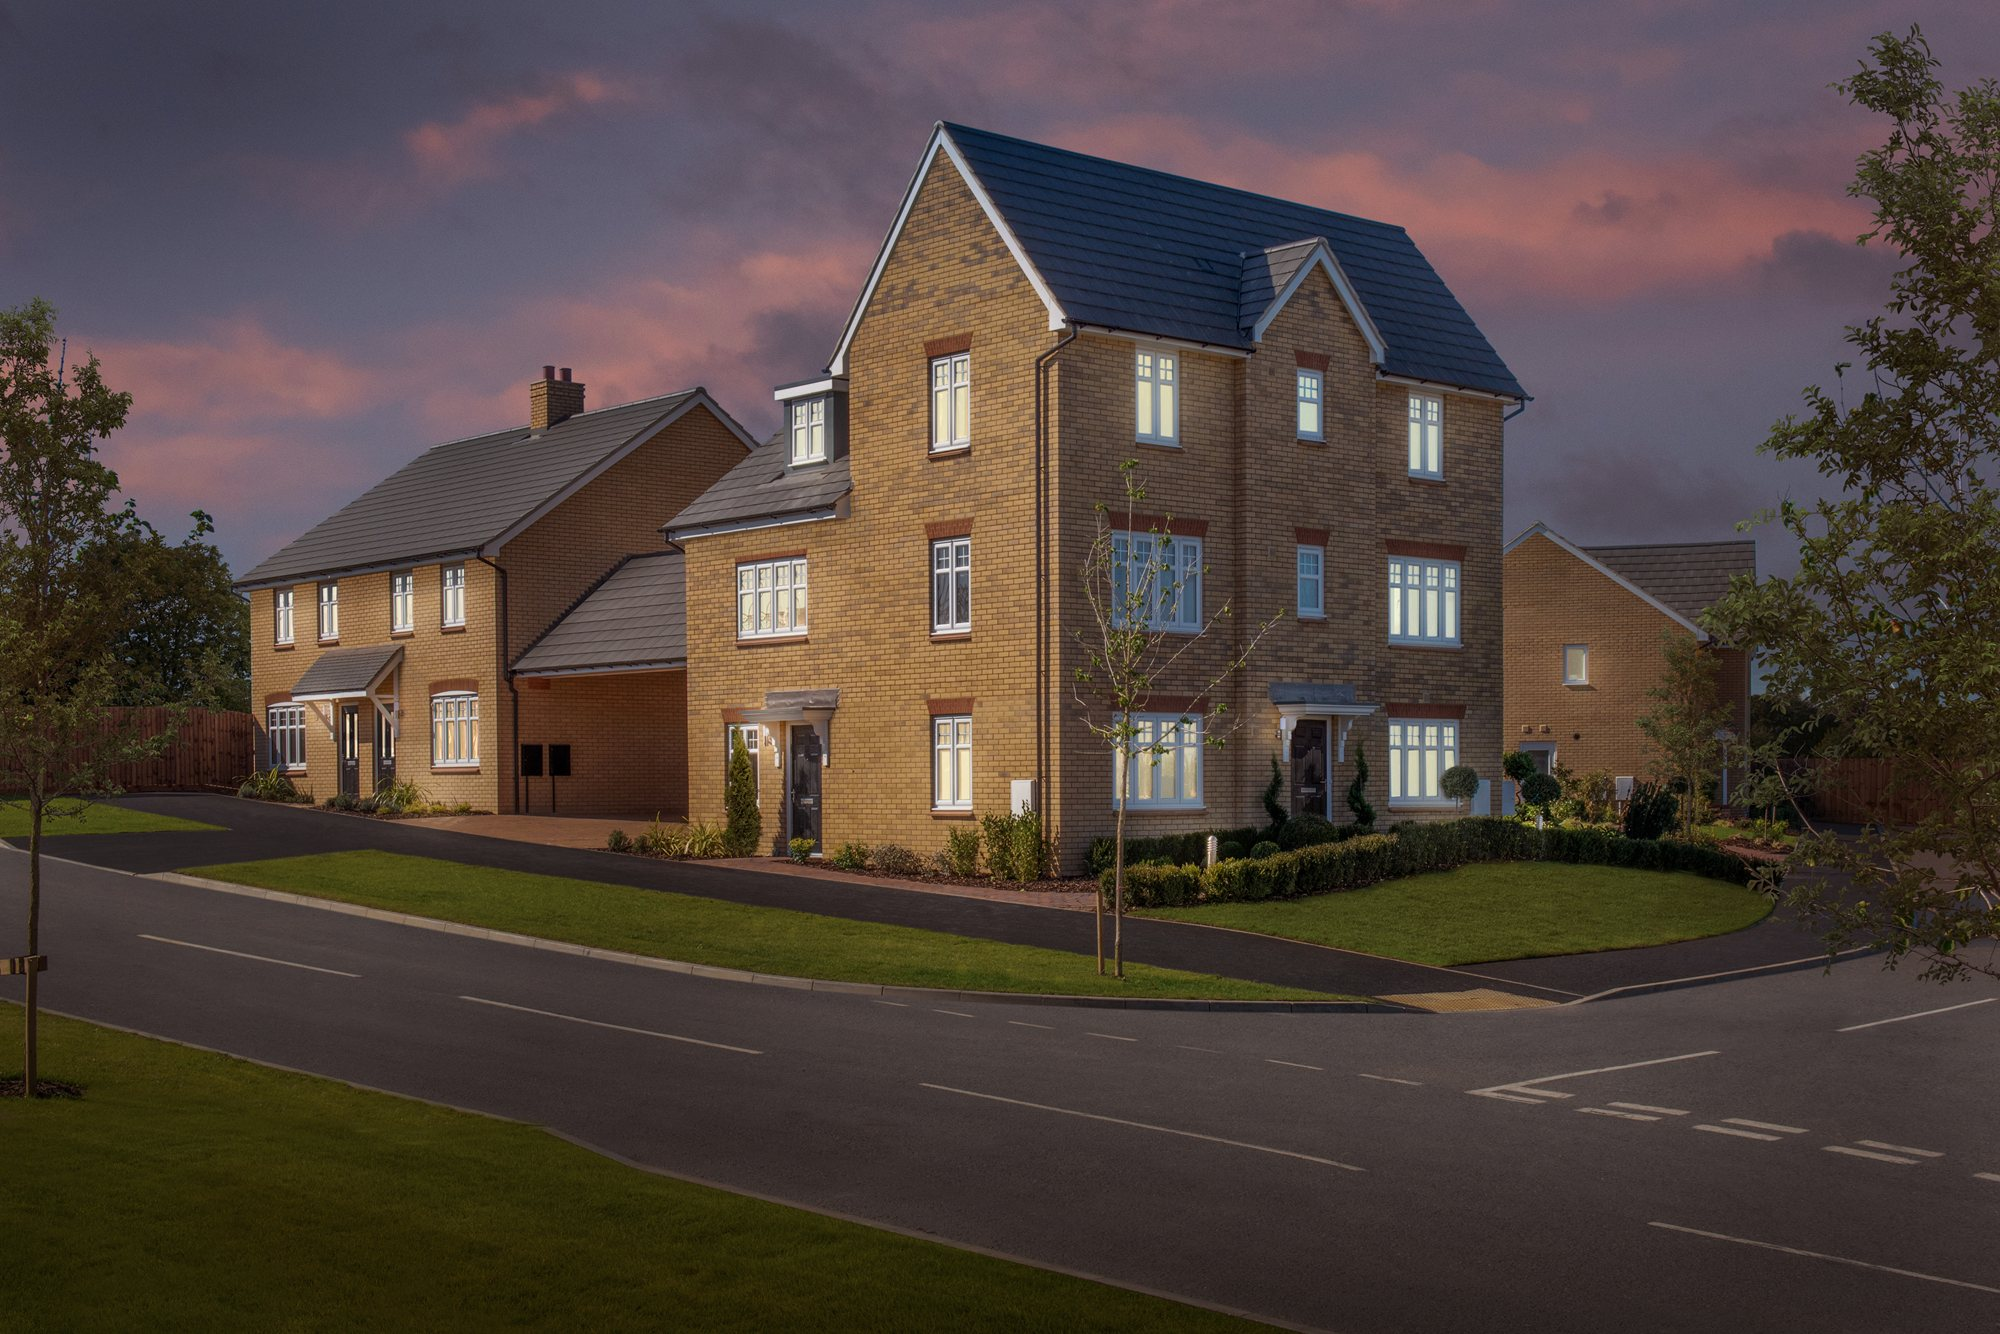 New Build Homes in Wixams